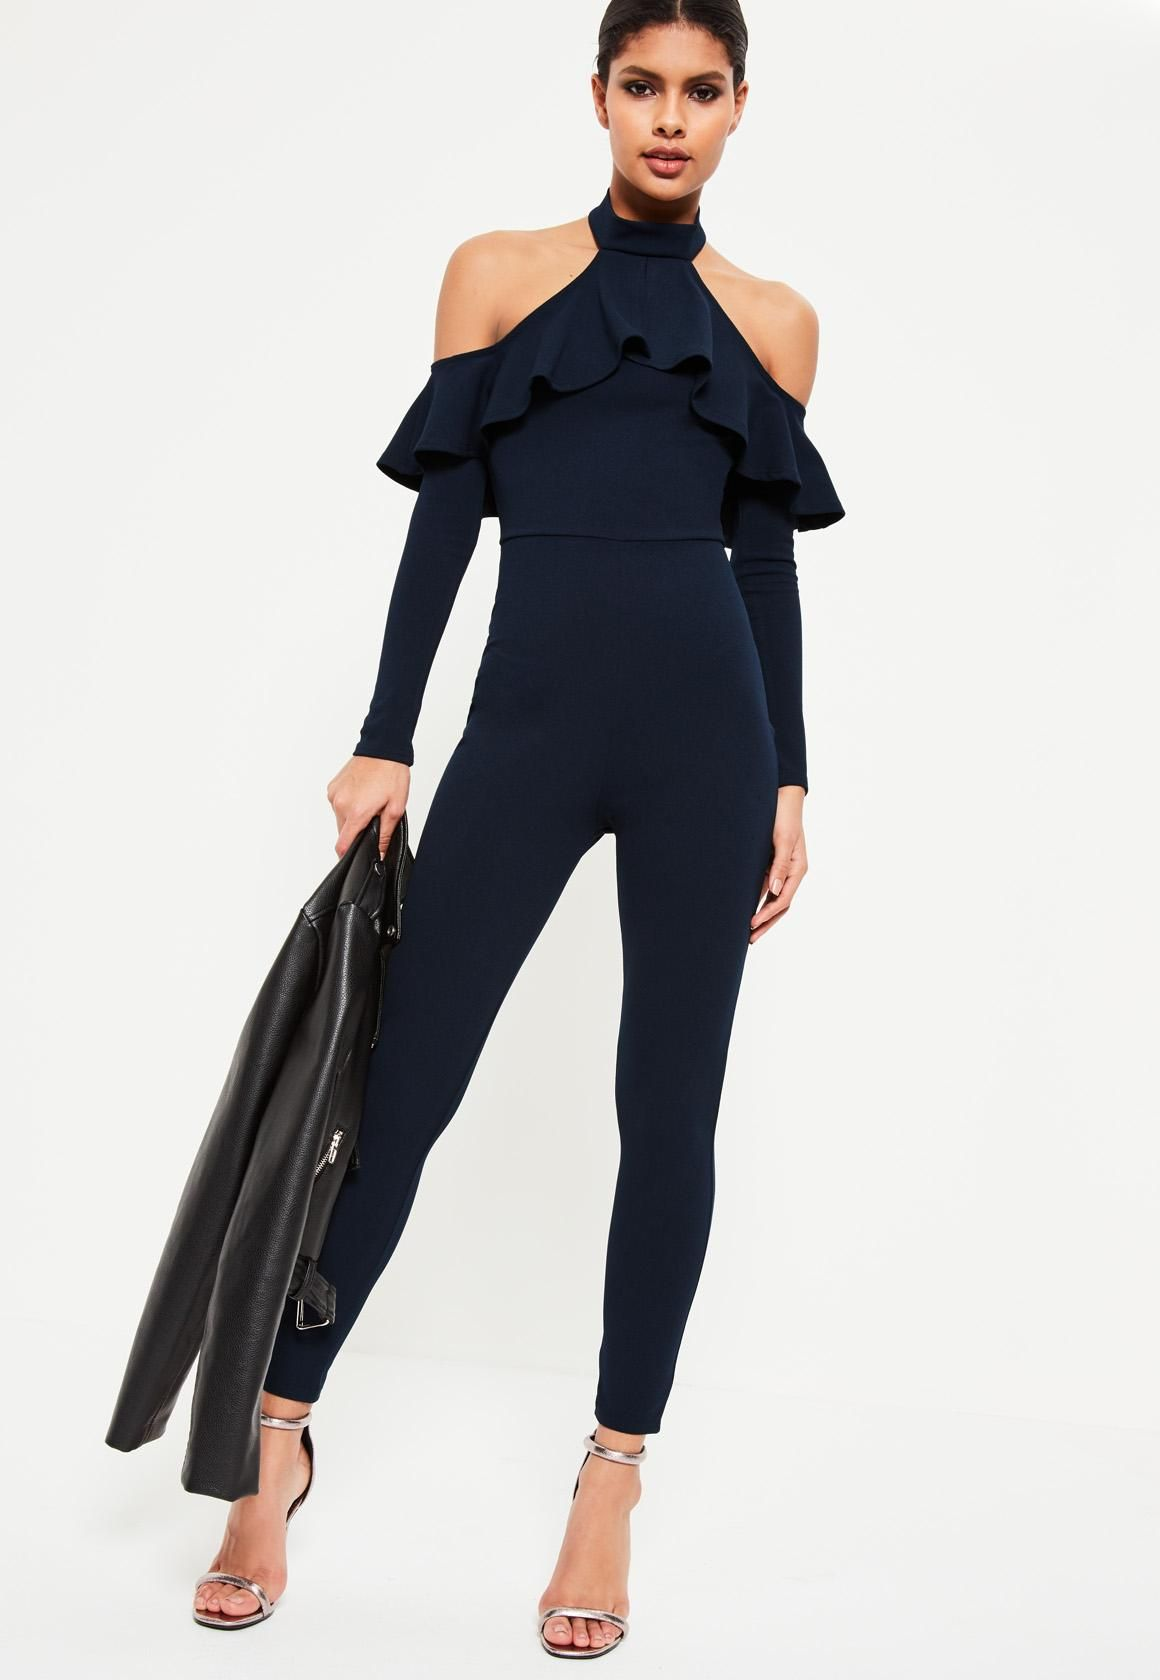 ad2f00b8d70 Missguided - Navy Halter Cold Shoulder Frill Jumpsuit